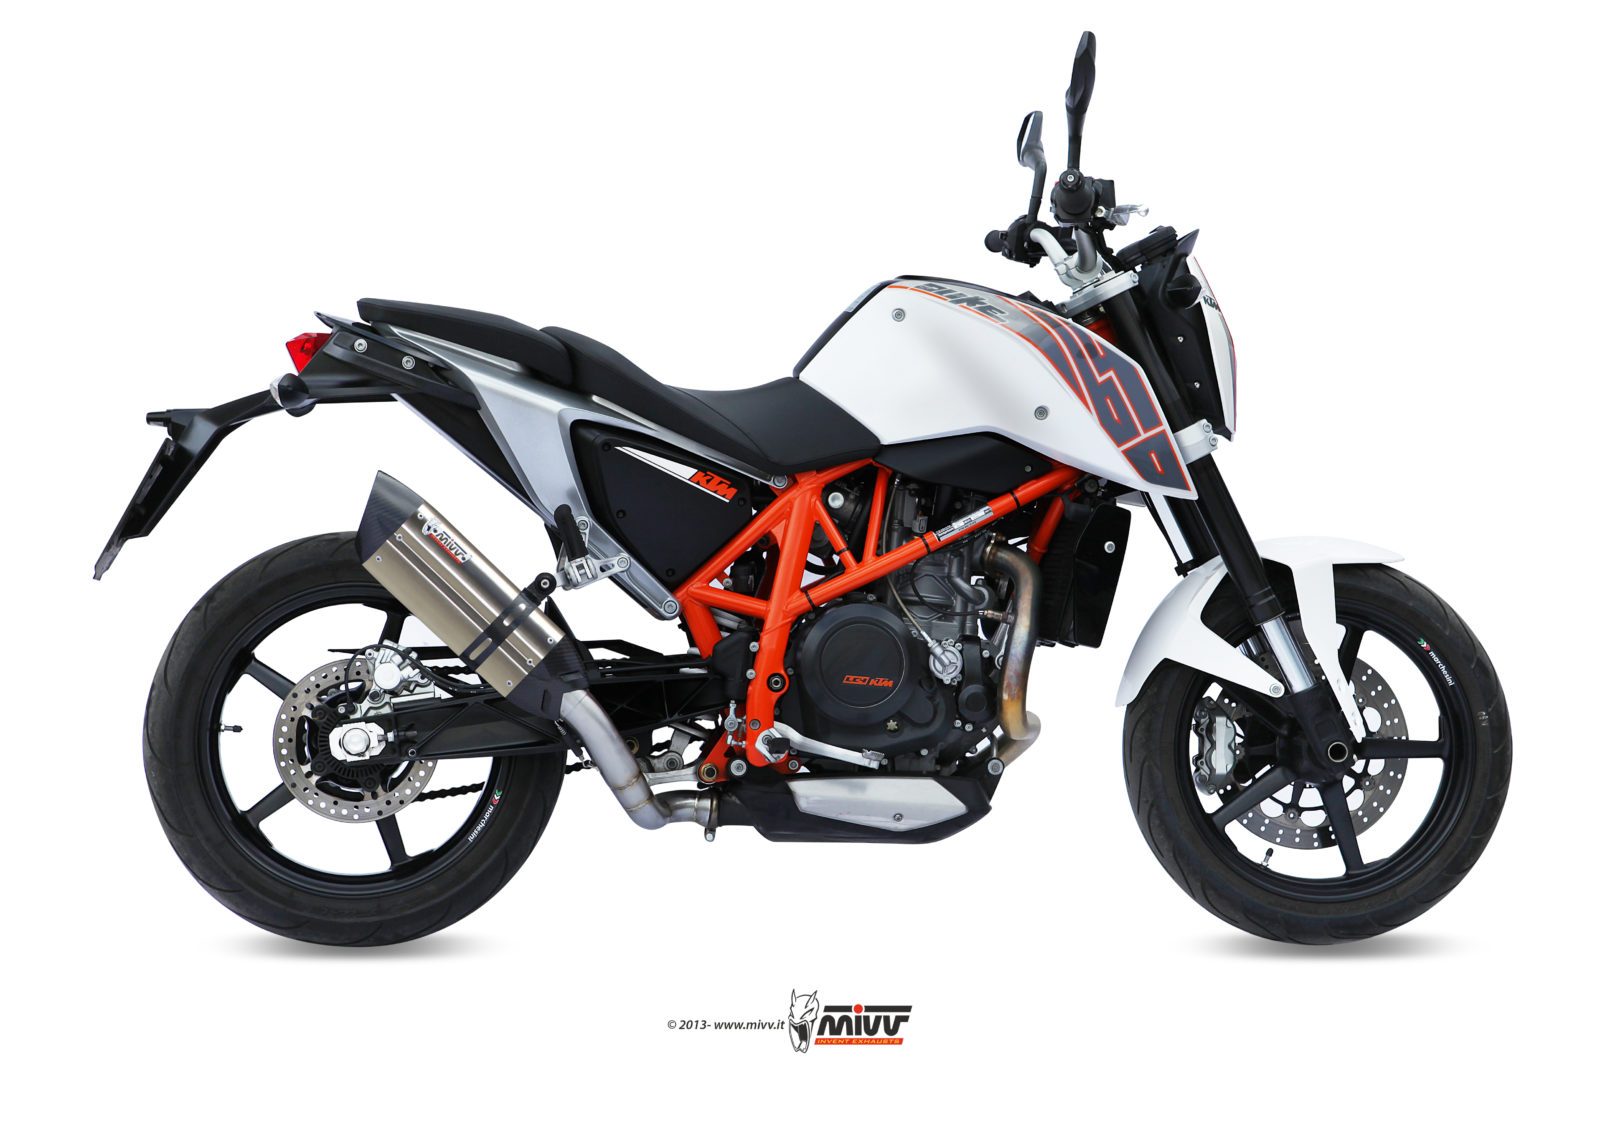 auspuff ktm 690 duke mivv suono edelstahl mivv. Black Bedroom Furniture Sets. Home Design Ideas